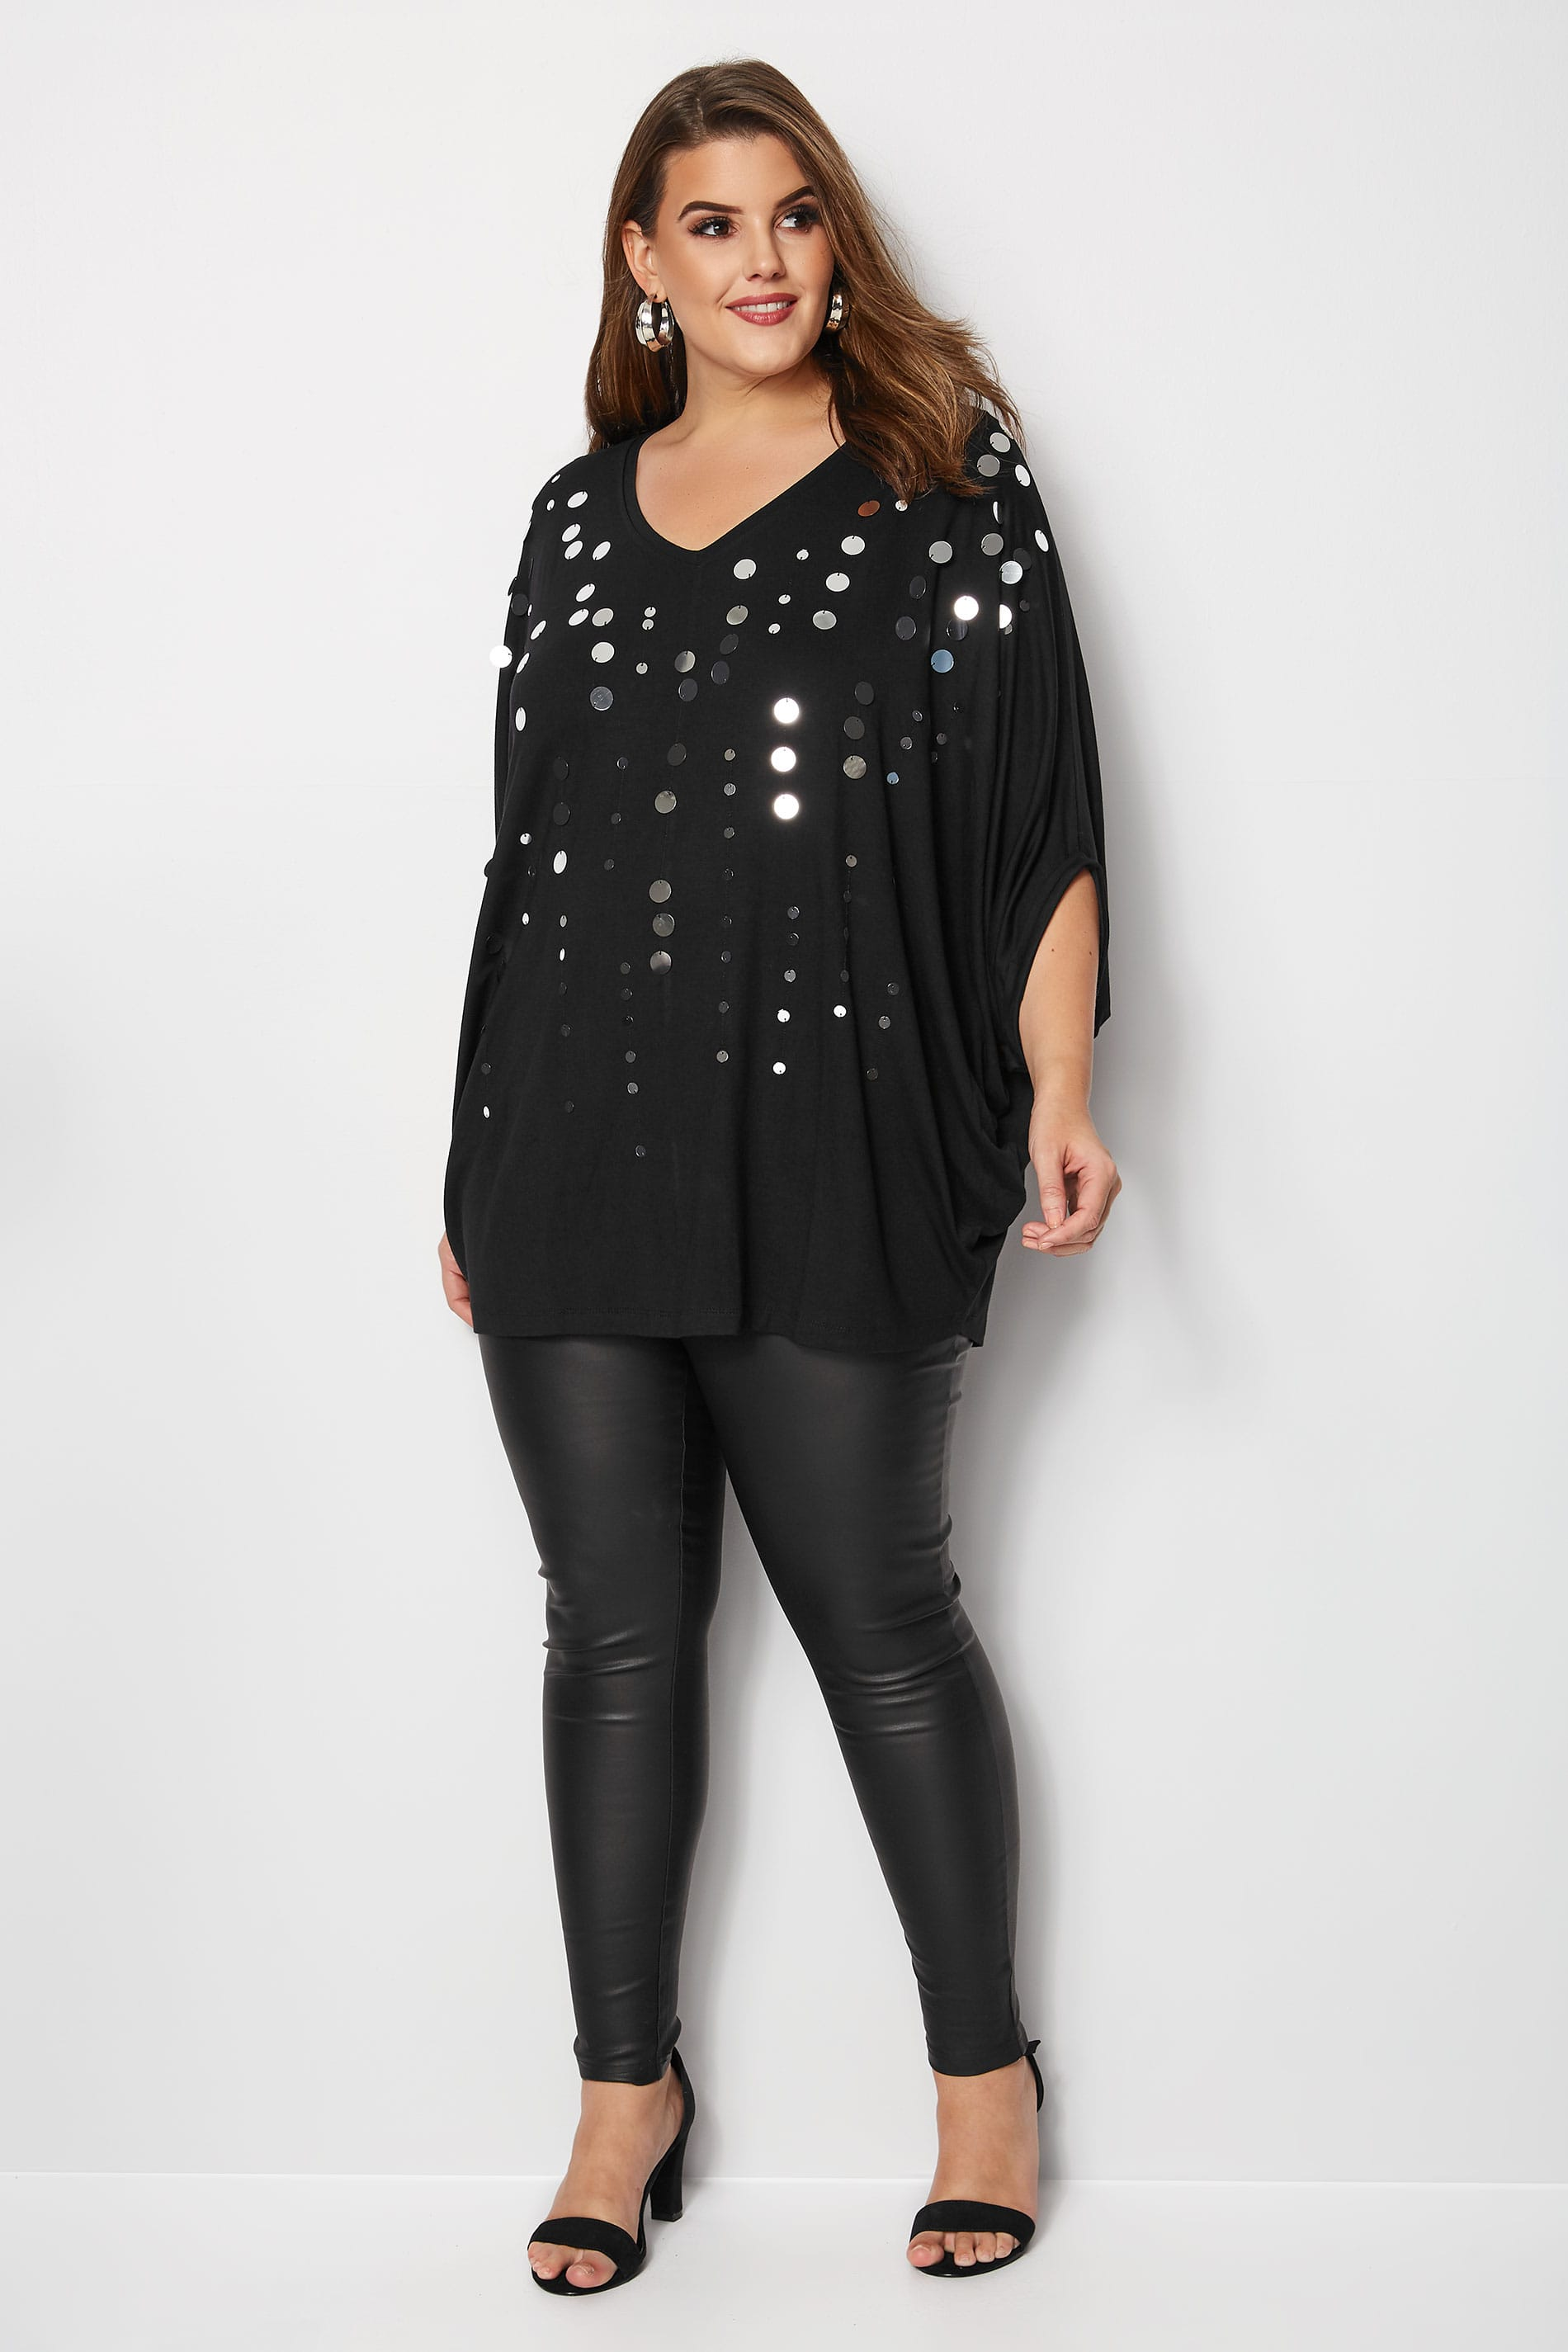 Rooms: Black Oversized Jersey Cape Top With Disc Sequin Details